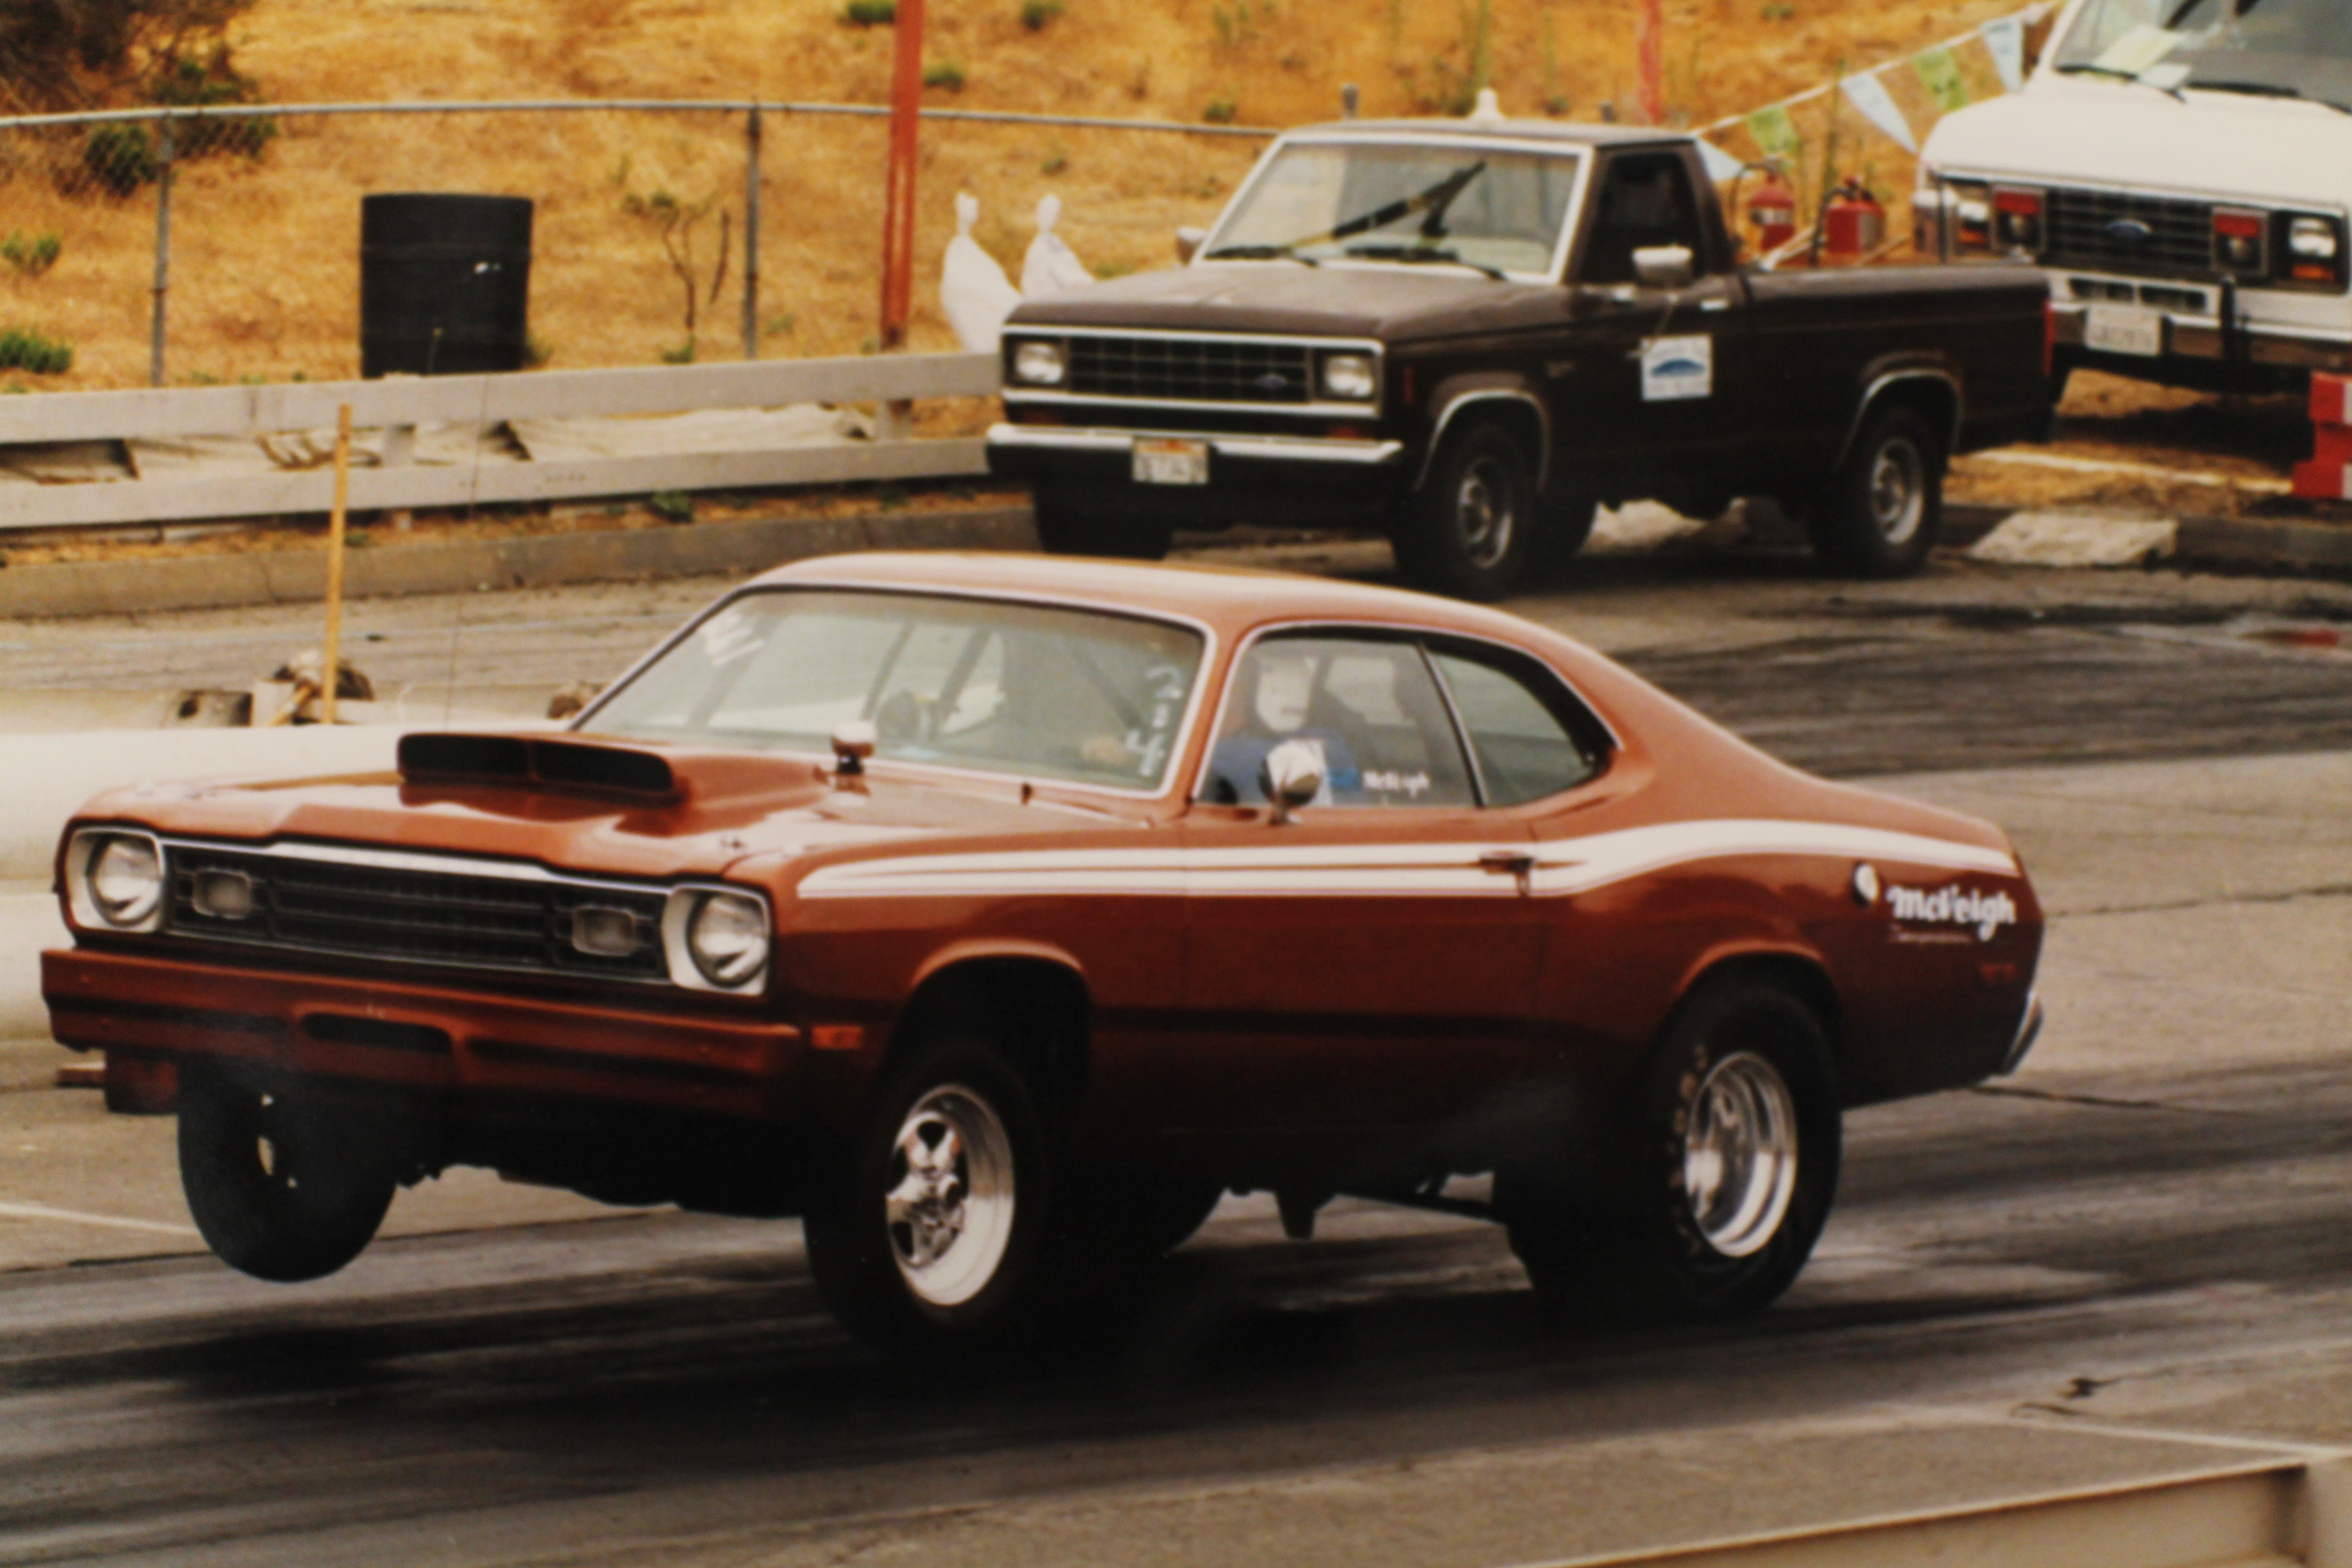 Bill McVeigh 1973 Duster